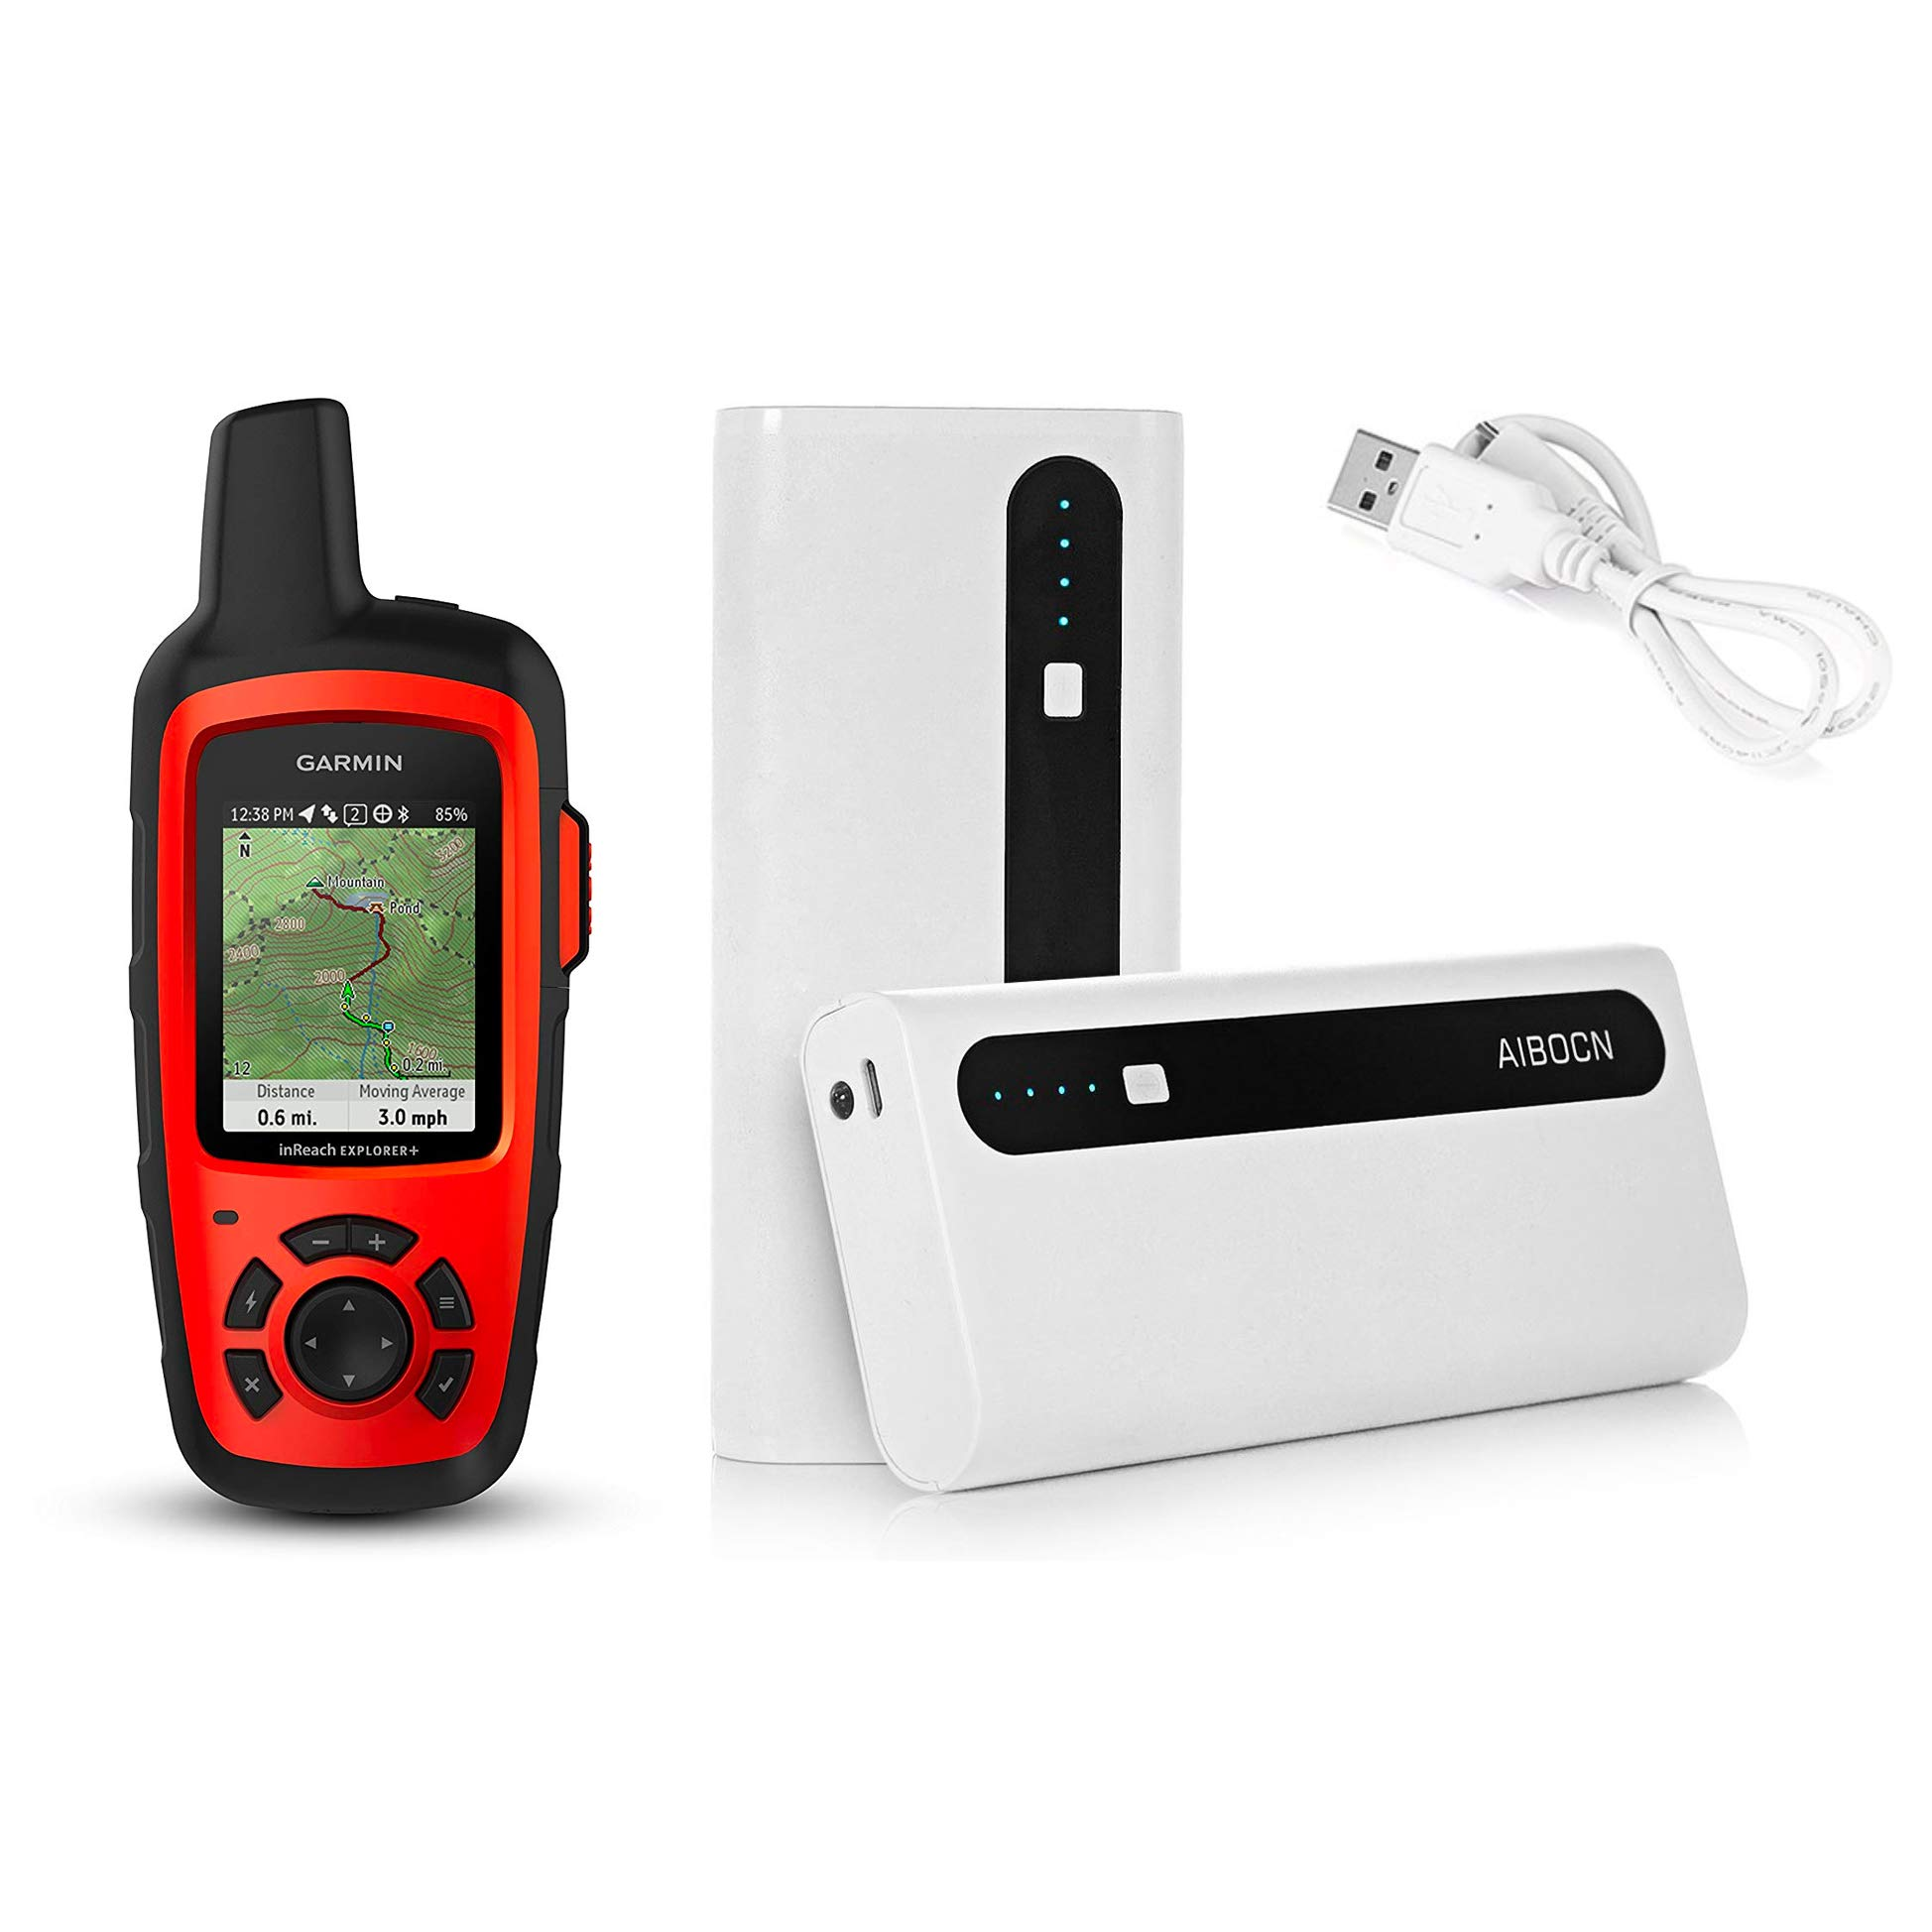 Garmin inReach Explorer+ Handheld Satellite Communicator with GPS Navigation, Maps, and Sensors 010-01735-10 and Aibocn 10,000mAh Portable Battery Charger Bundle by GPS City